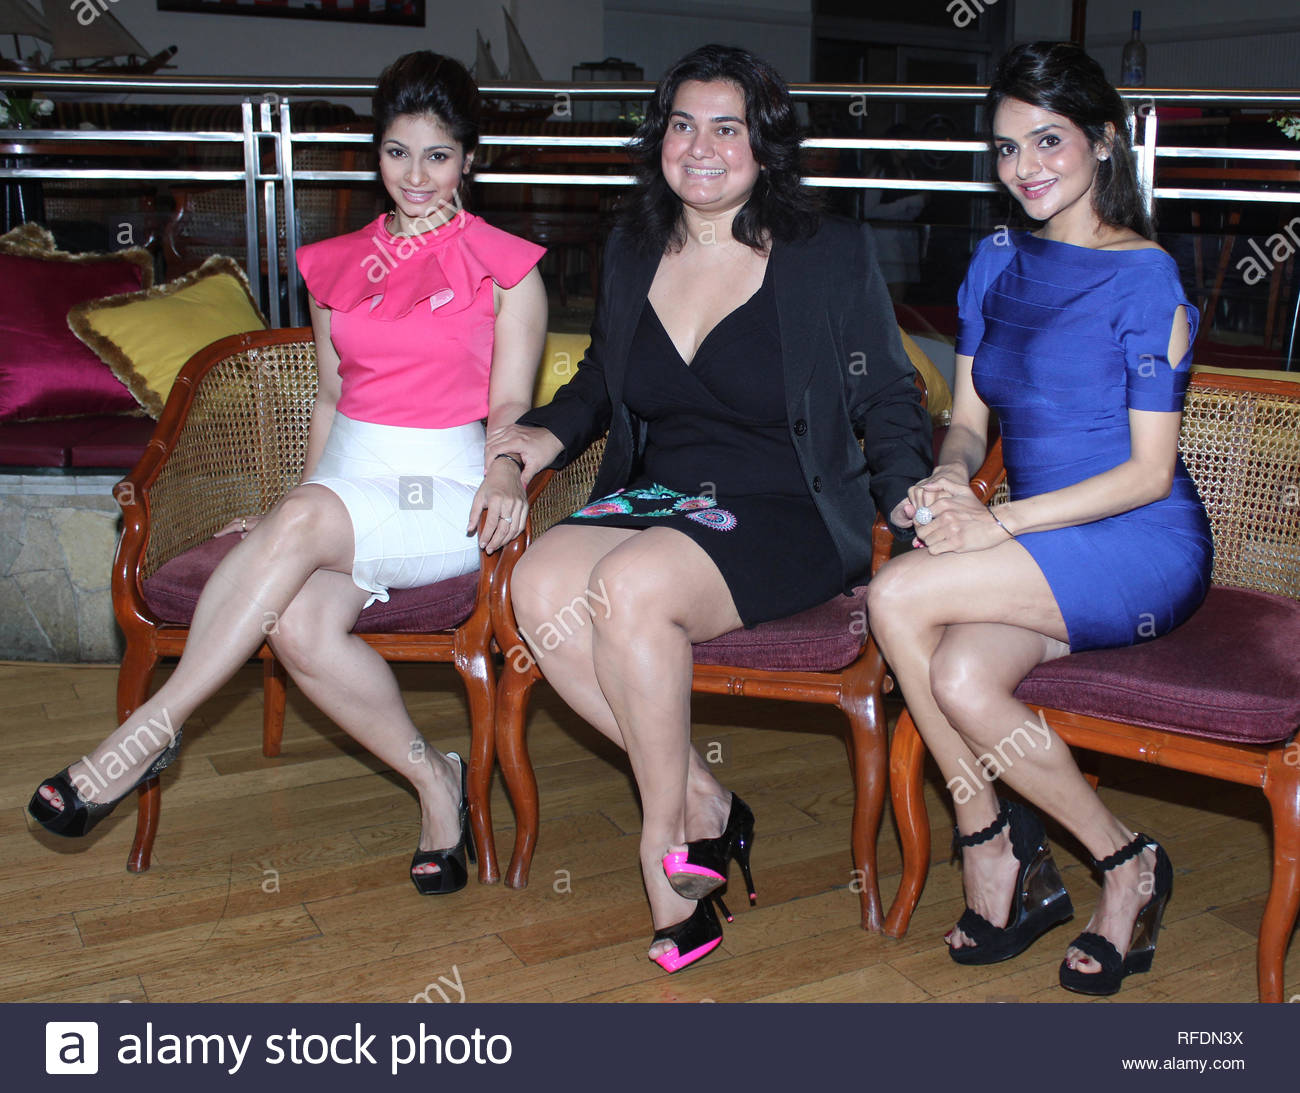 (L to R) Bollywood and Theatre personalities Tanisha, Divya Palat and Madhooo during the promotion of their new play The Verdict in Mumbai, India on August 7, 2013.(Utsav Devdutta) - Stock Image